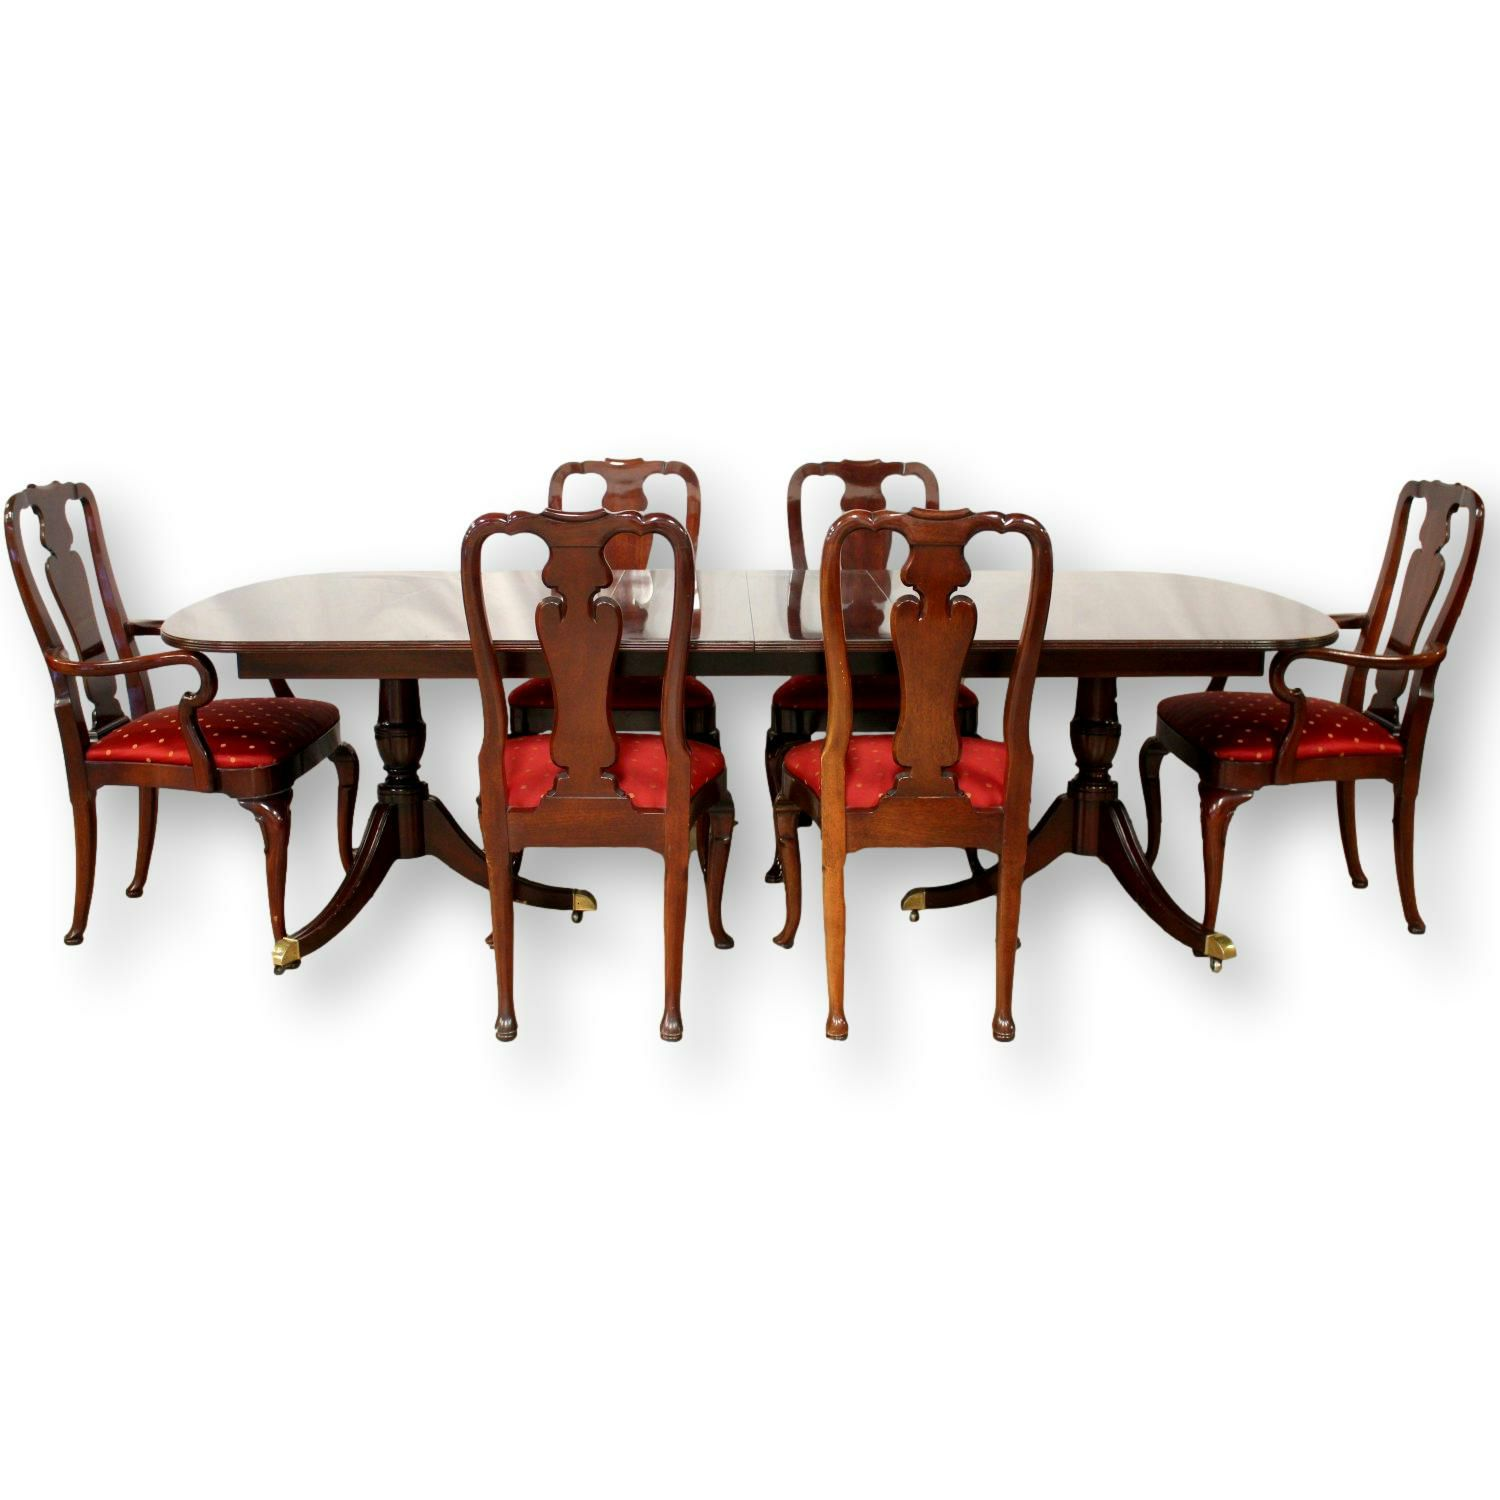 Flame-Mahogany-Dining-Table-w6-Chairs_92473A.jpg